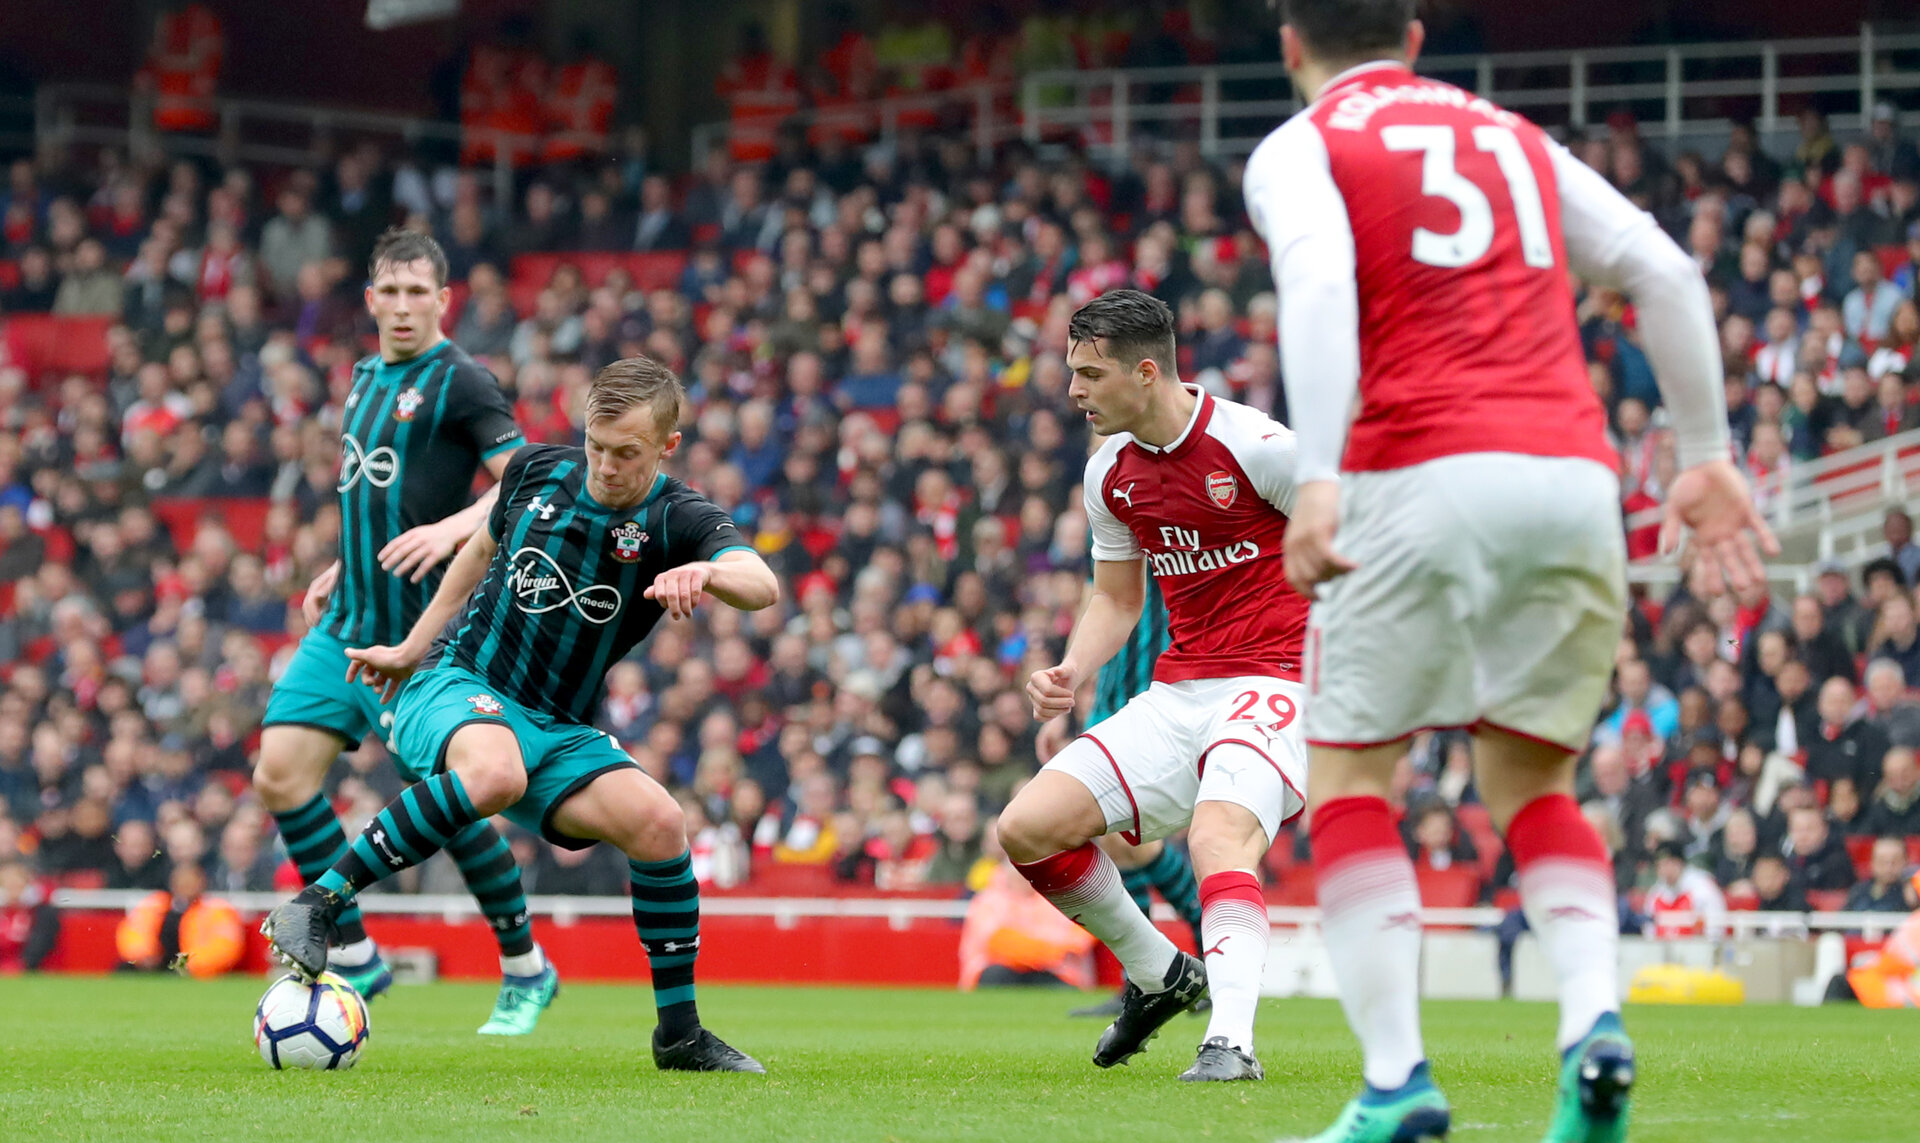 LONDON, ENGLAND - APRIL 08: James Ward-Prowse of Southampton during the Premier League match between Arsenal and Southampton at Emirates Stadium on April 8, 2018 in London, England. (Photo by Matt Watson/Southampton FC via Getty Images)